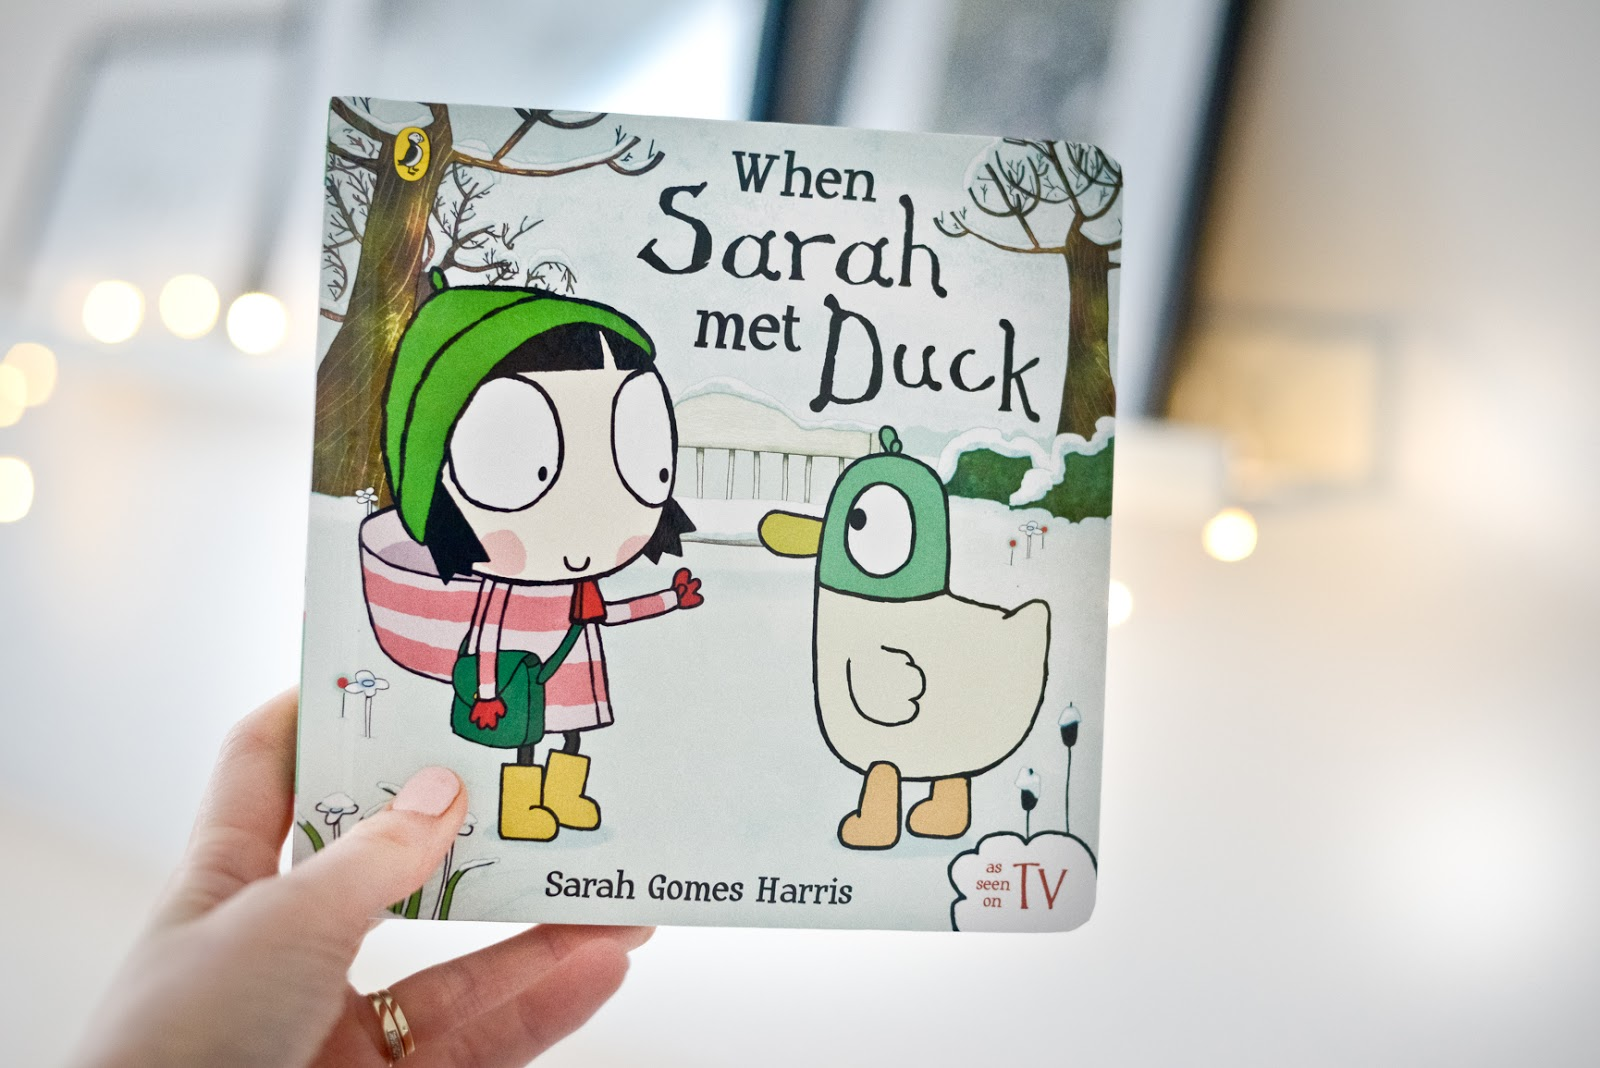 When Sarah Met Duck